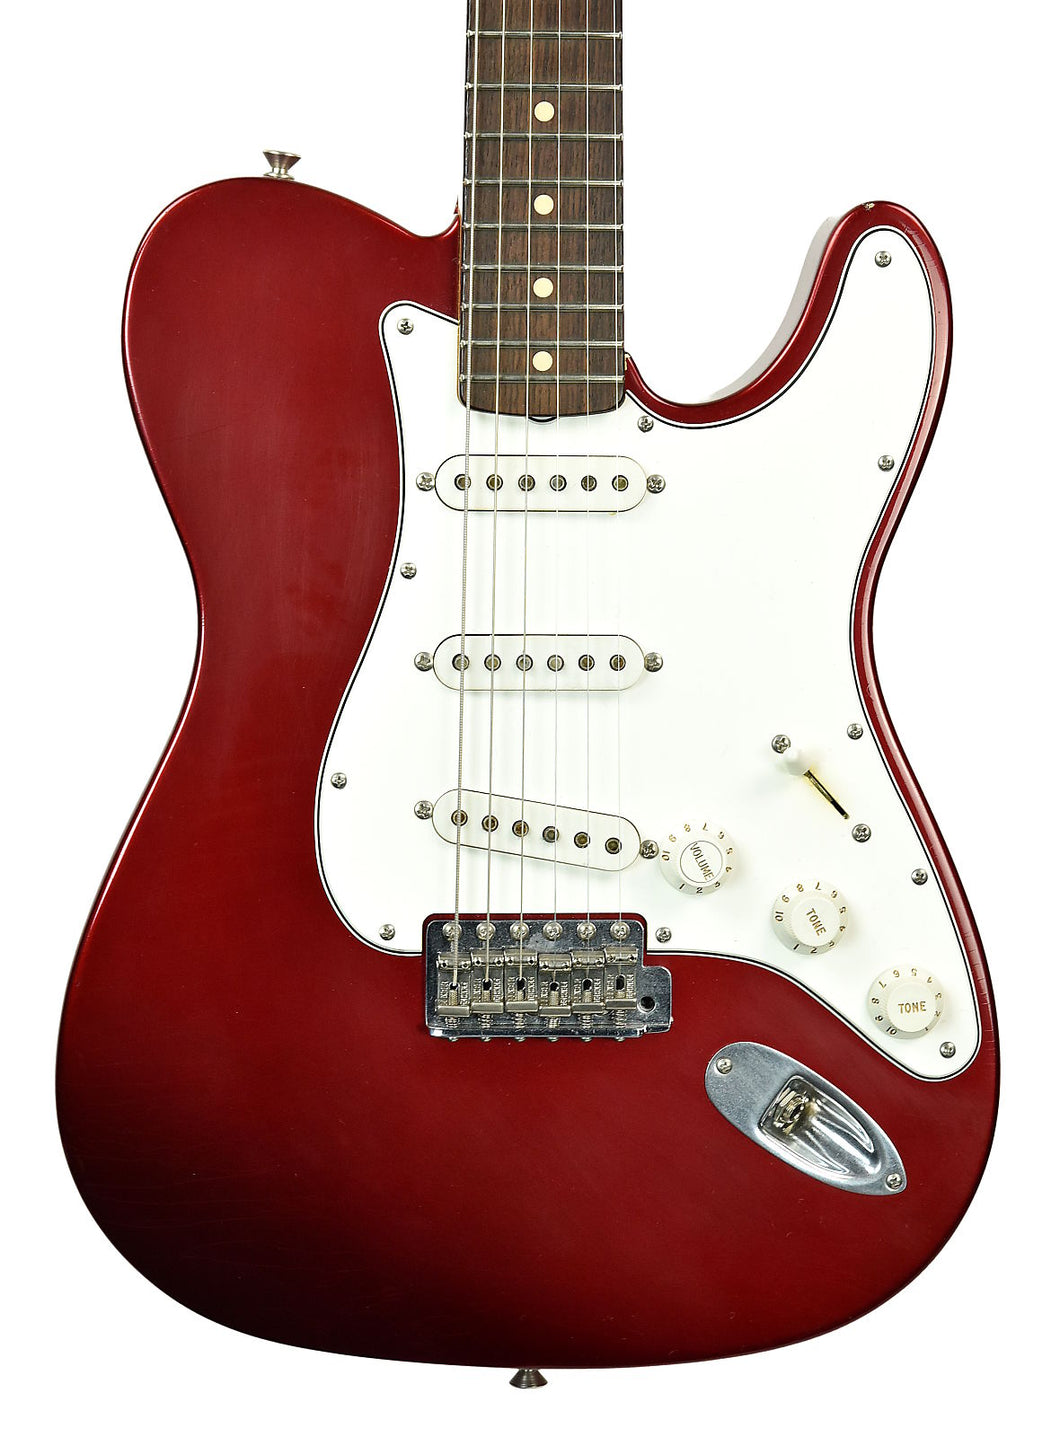 Used 2006 Fender® Custom Shop Chris Fleming Masterbuilt Hybrid Tele in Candy Apple Red | Front Small